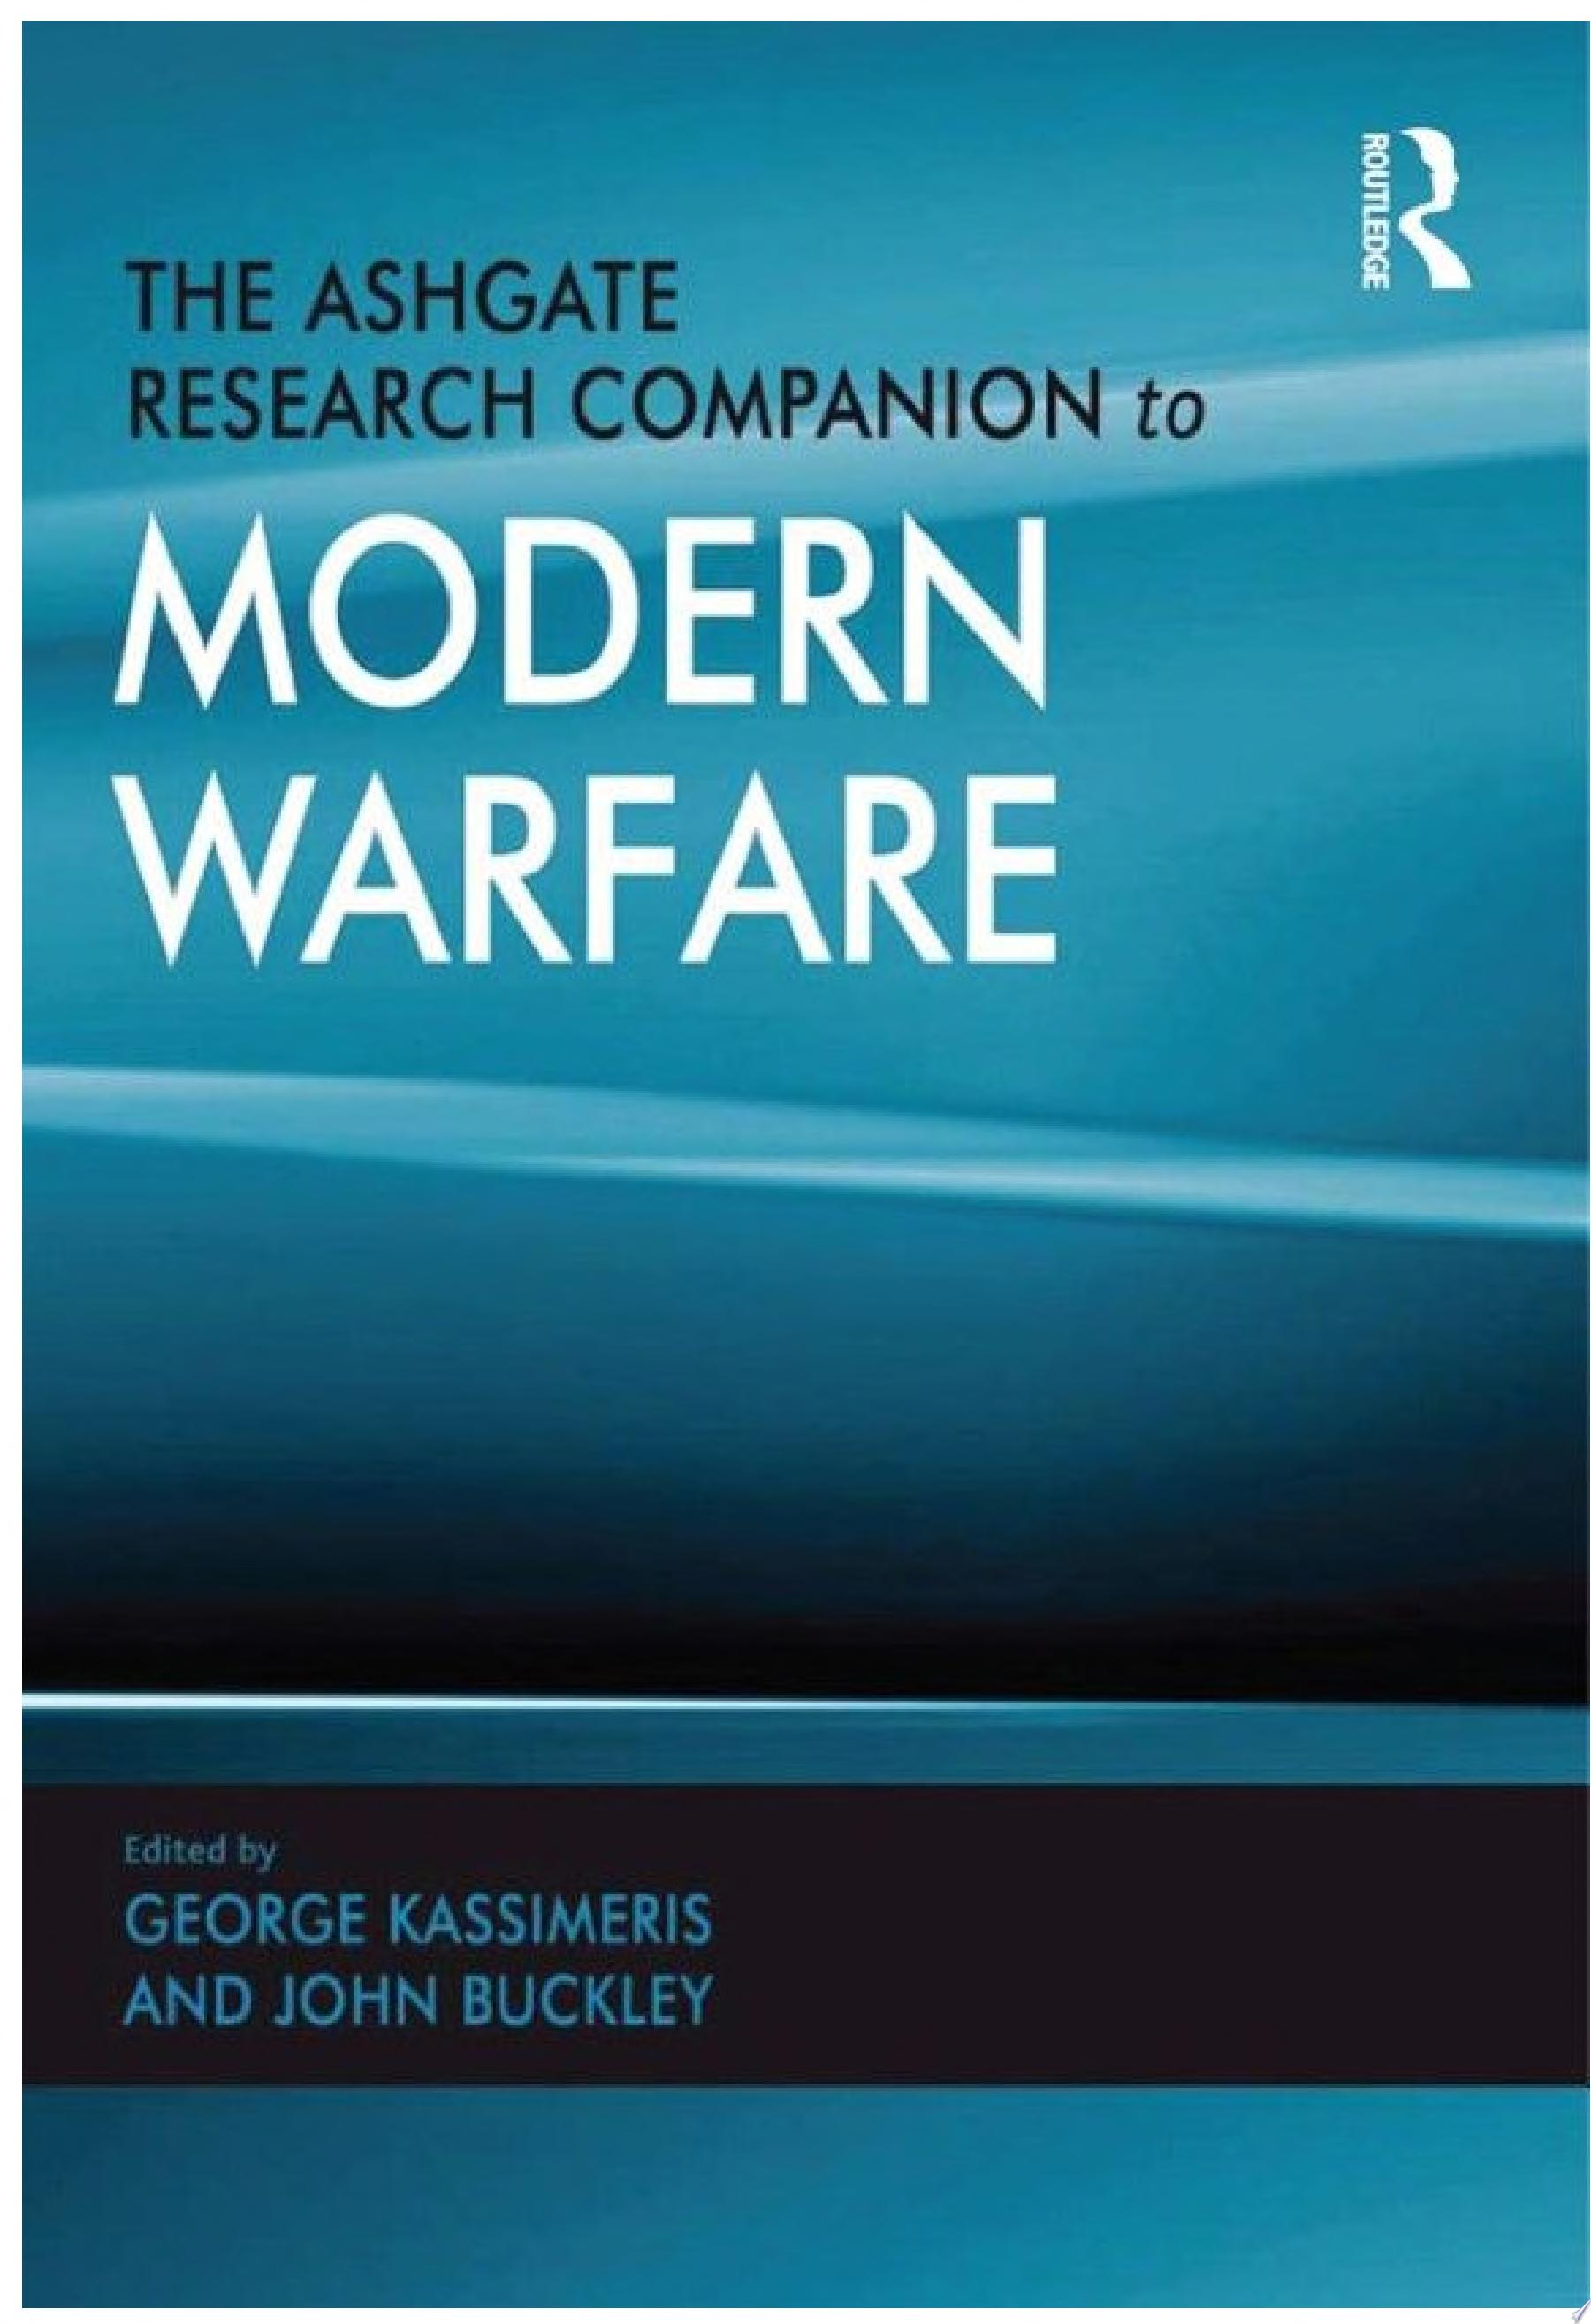 The Ashgate Research Companion to Modern Warfare